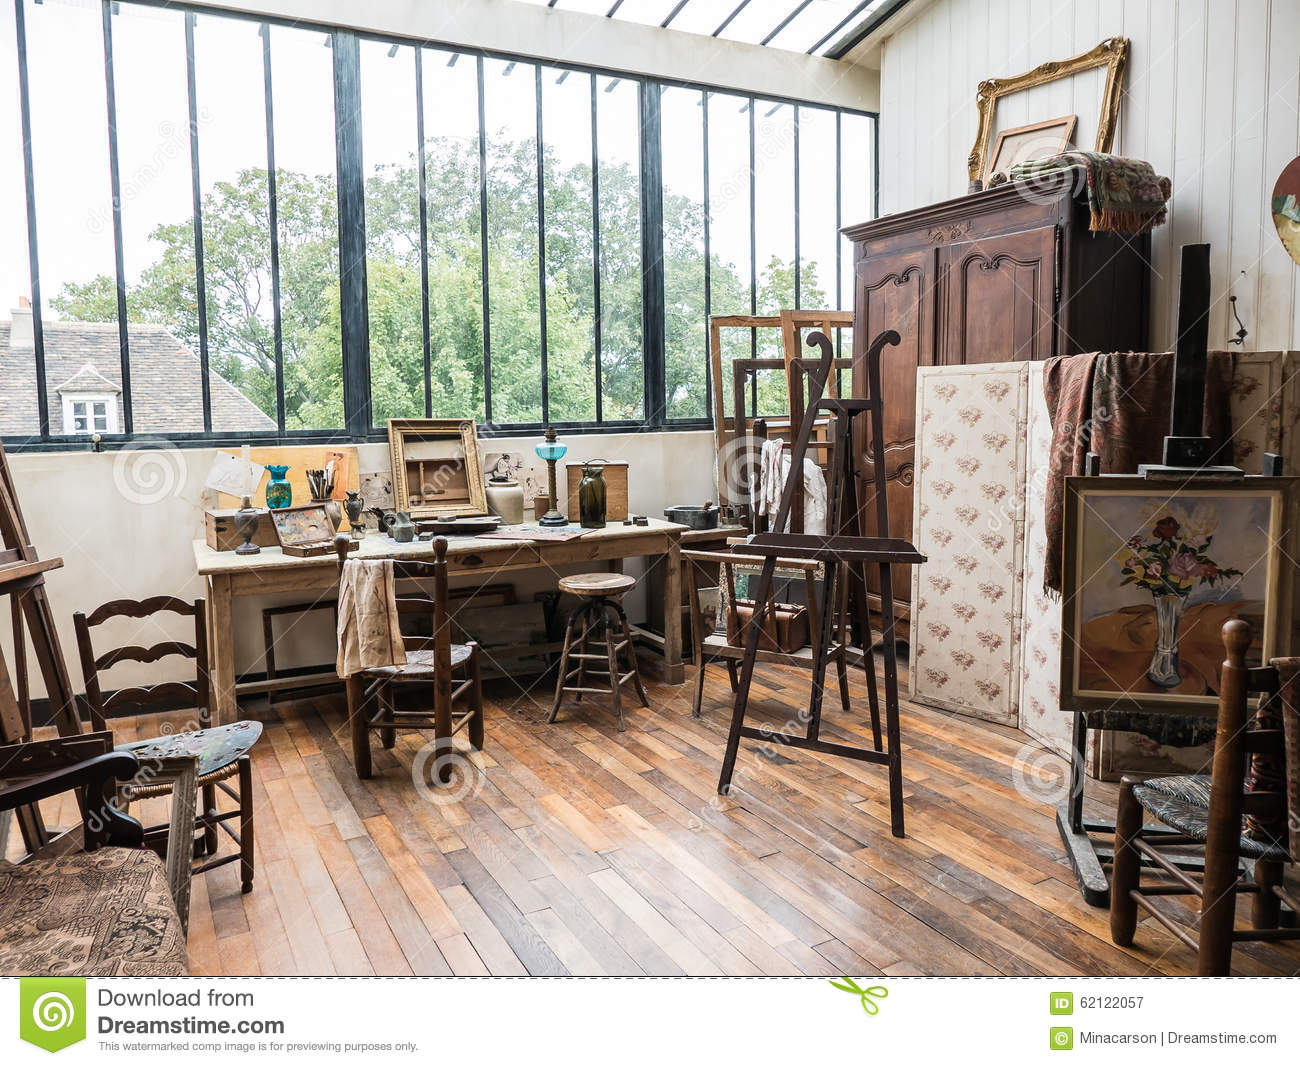 Suzanne Valadon Painting Studio In Musee De Montmartre